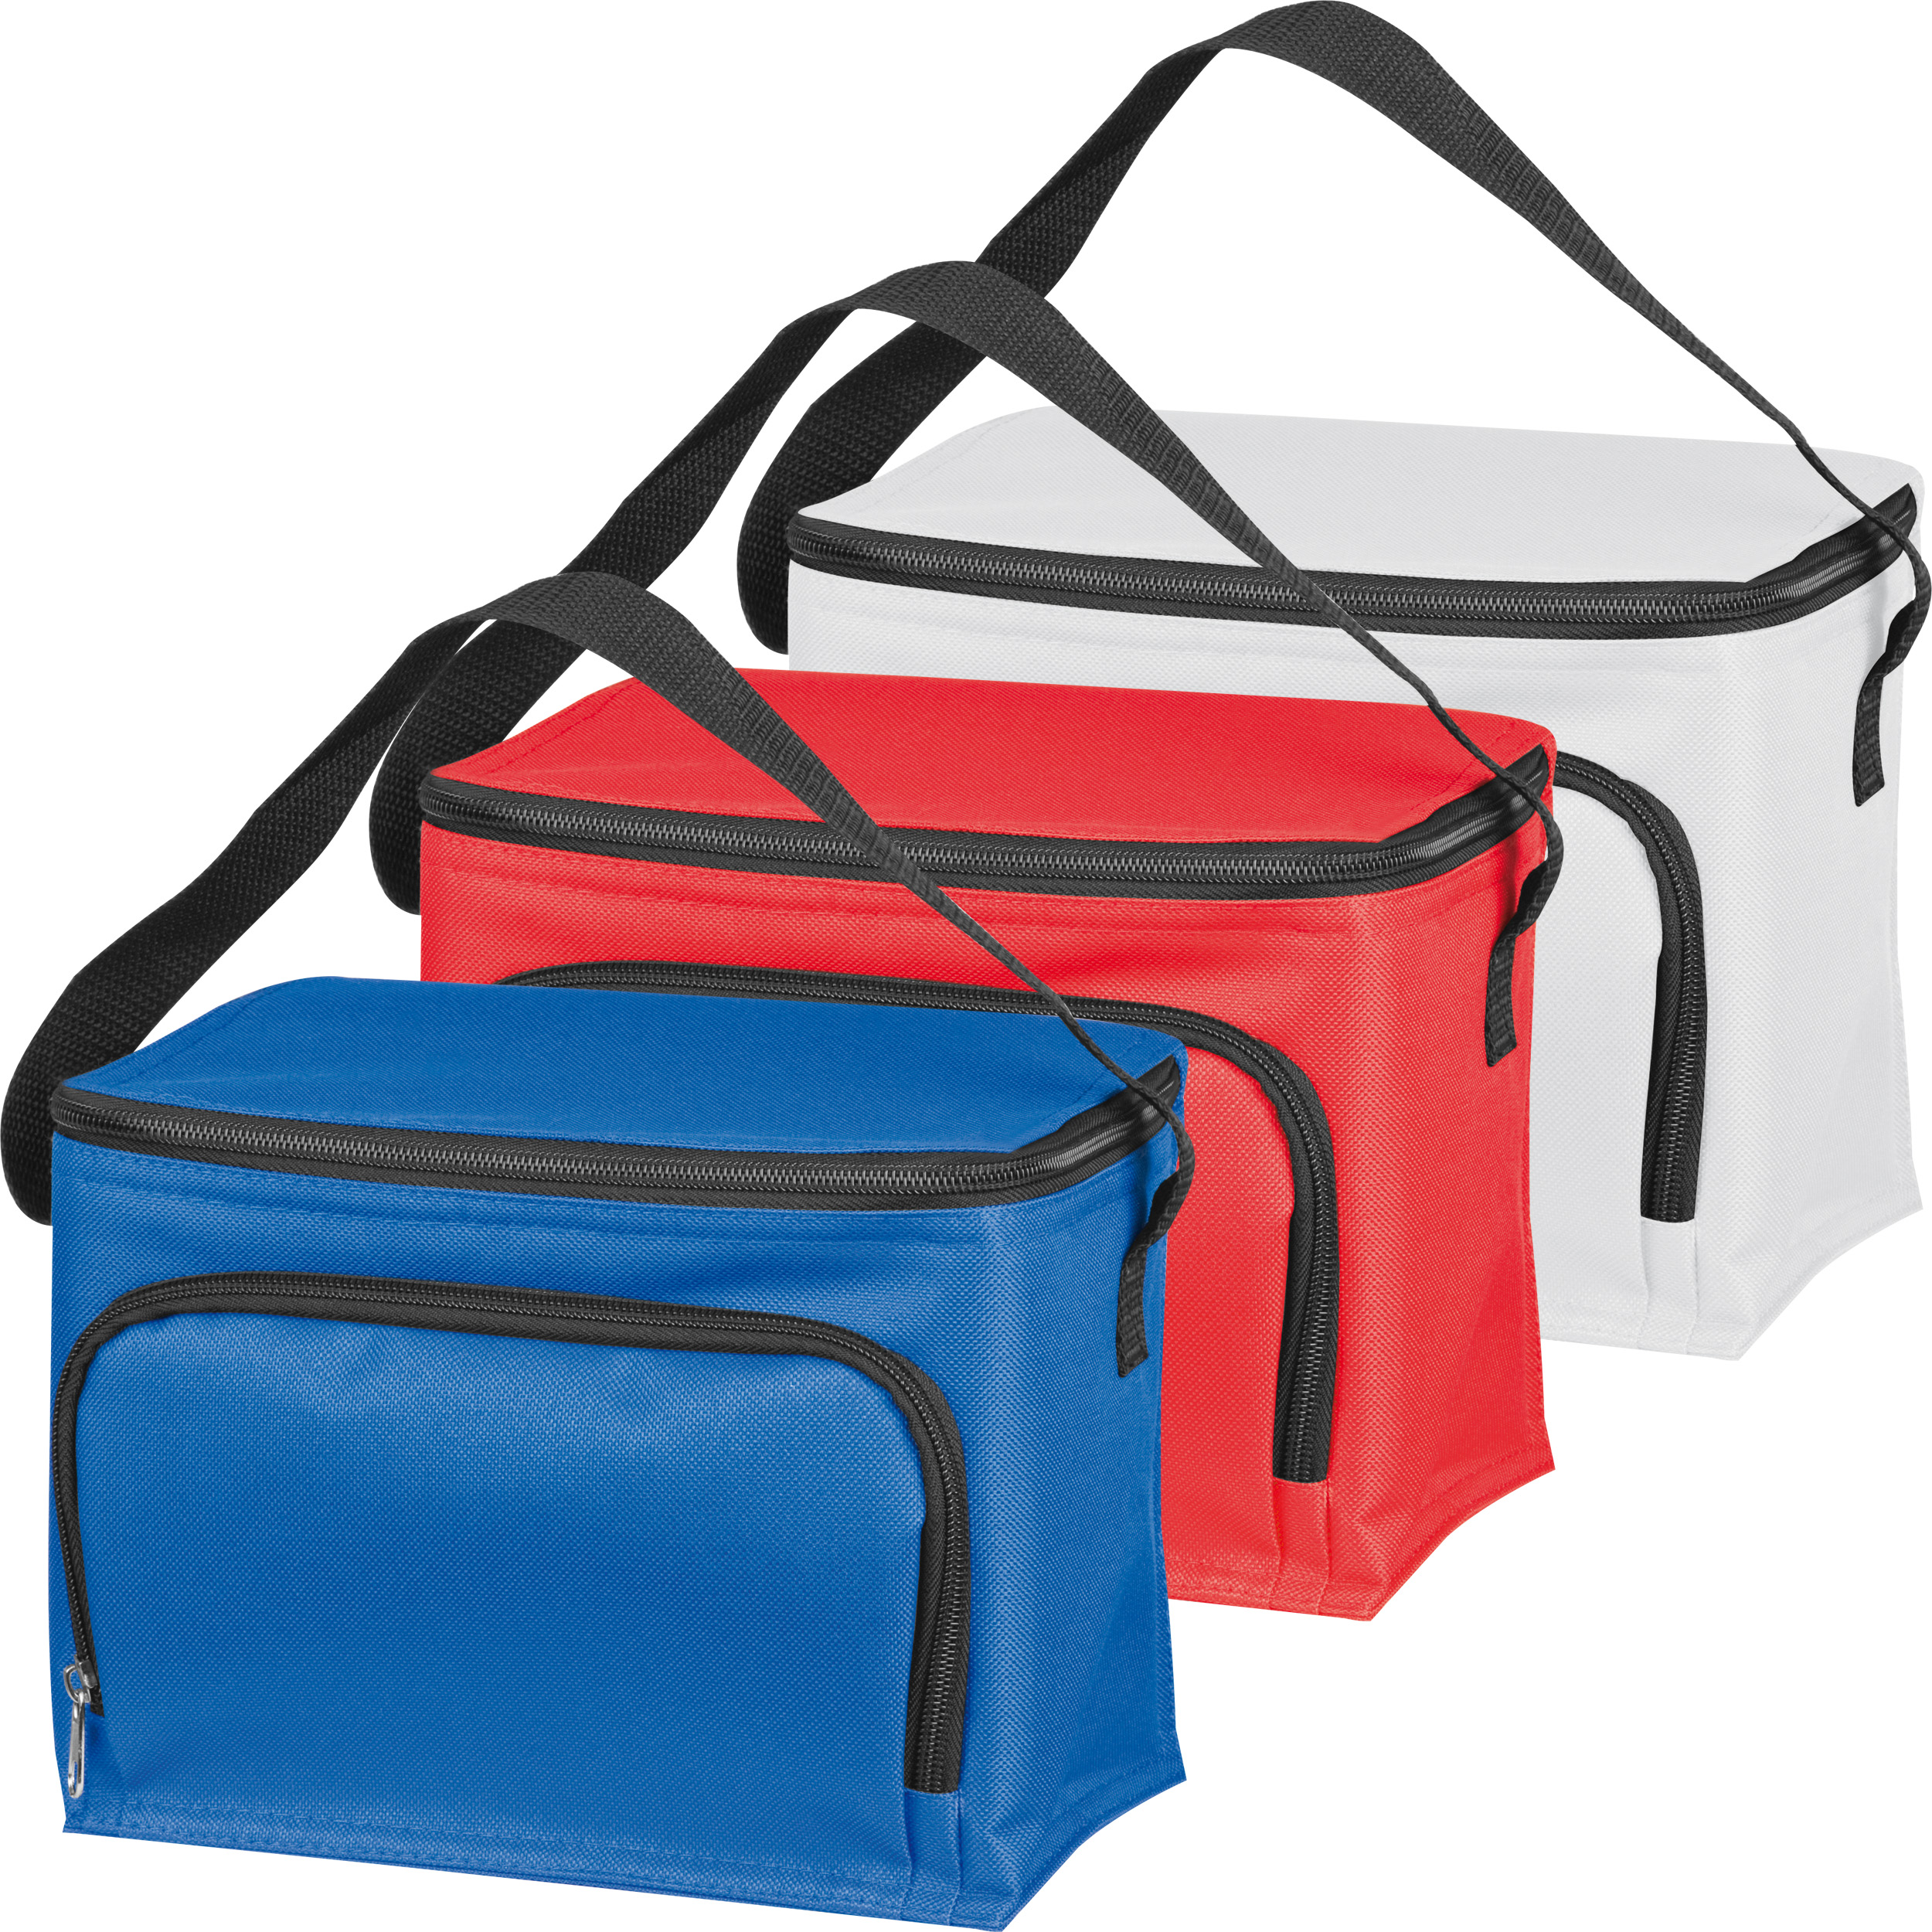 210D polyester cooler bag with front compartment